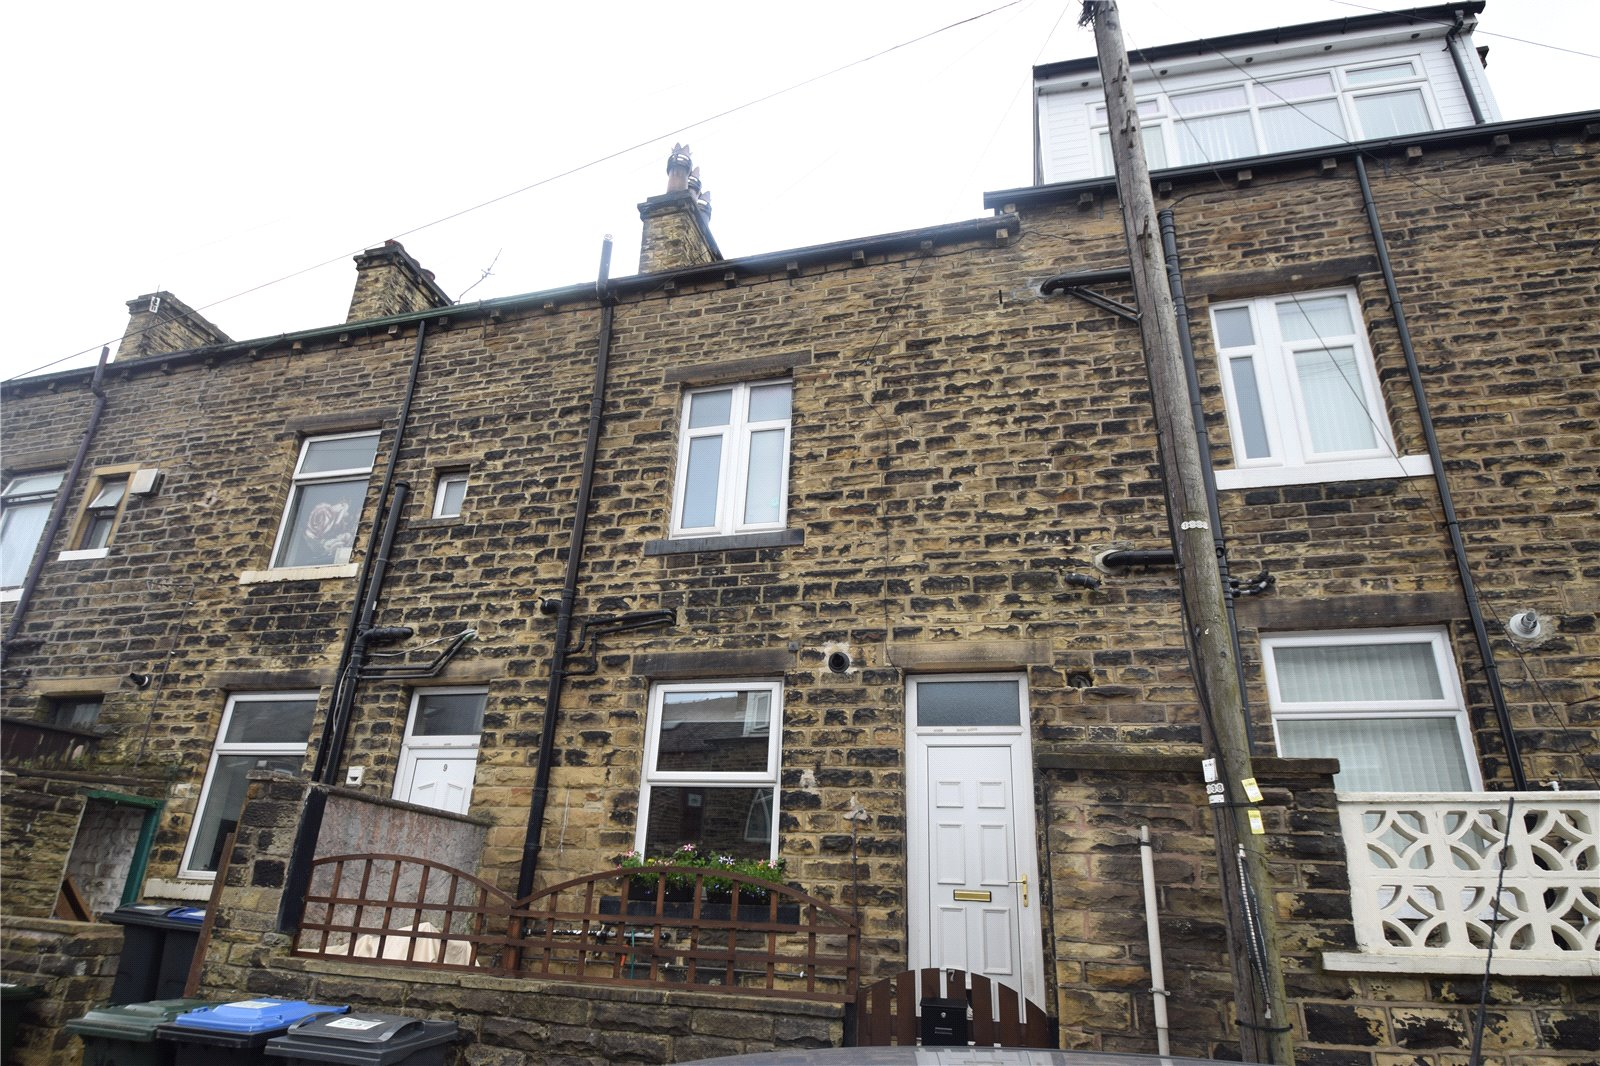 Yorkshire Terrace: Whitegates Keighley 3 Bedroom House SSTC In Dalton Terrace